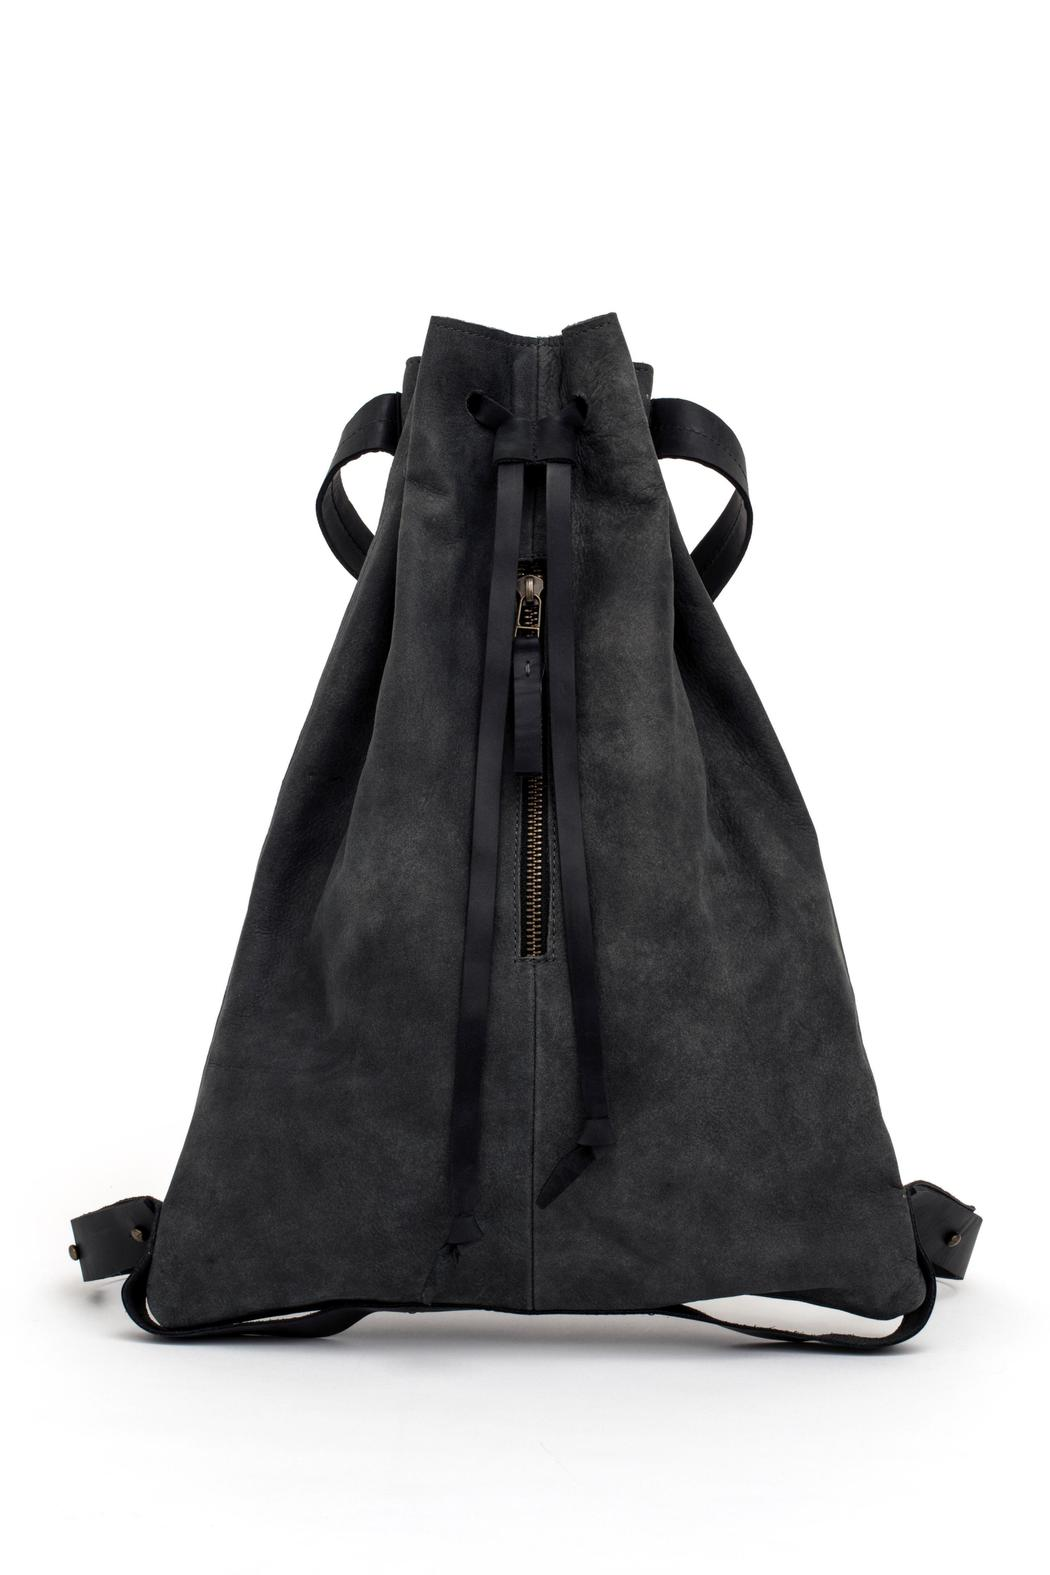 MEIRAV OHAYON Charcoal Drawstring Backpack - Front Full Image